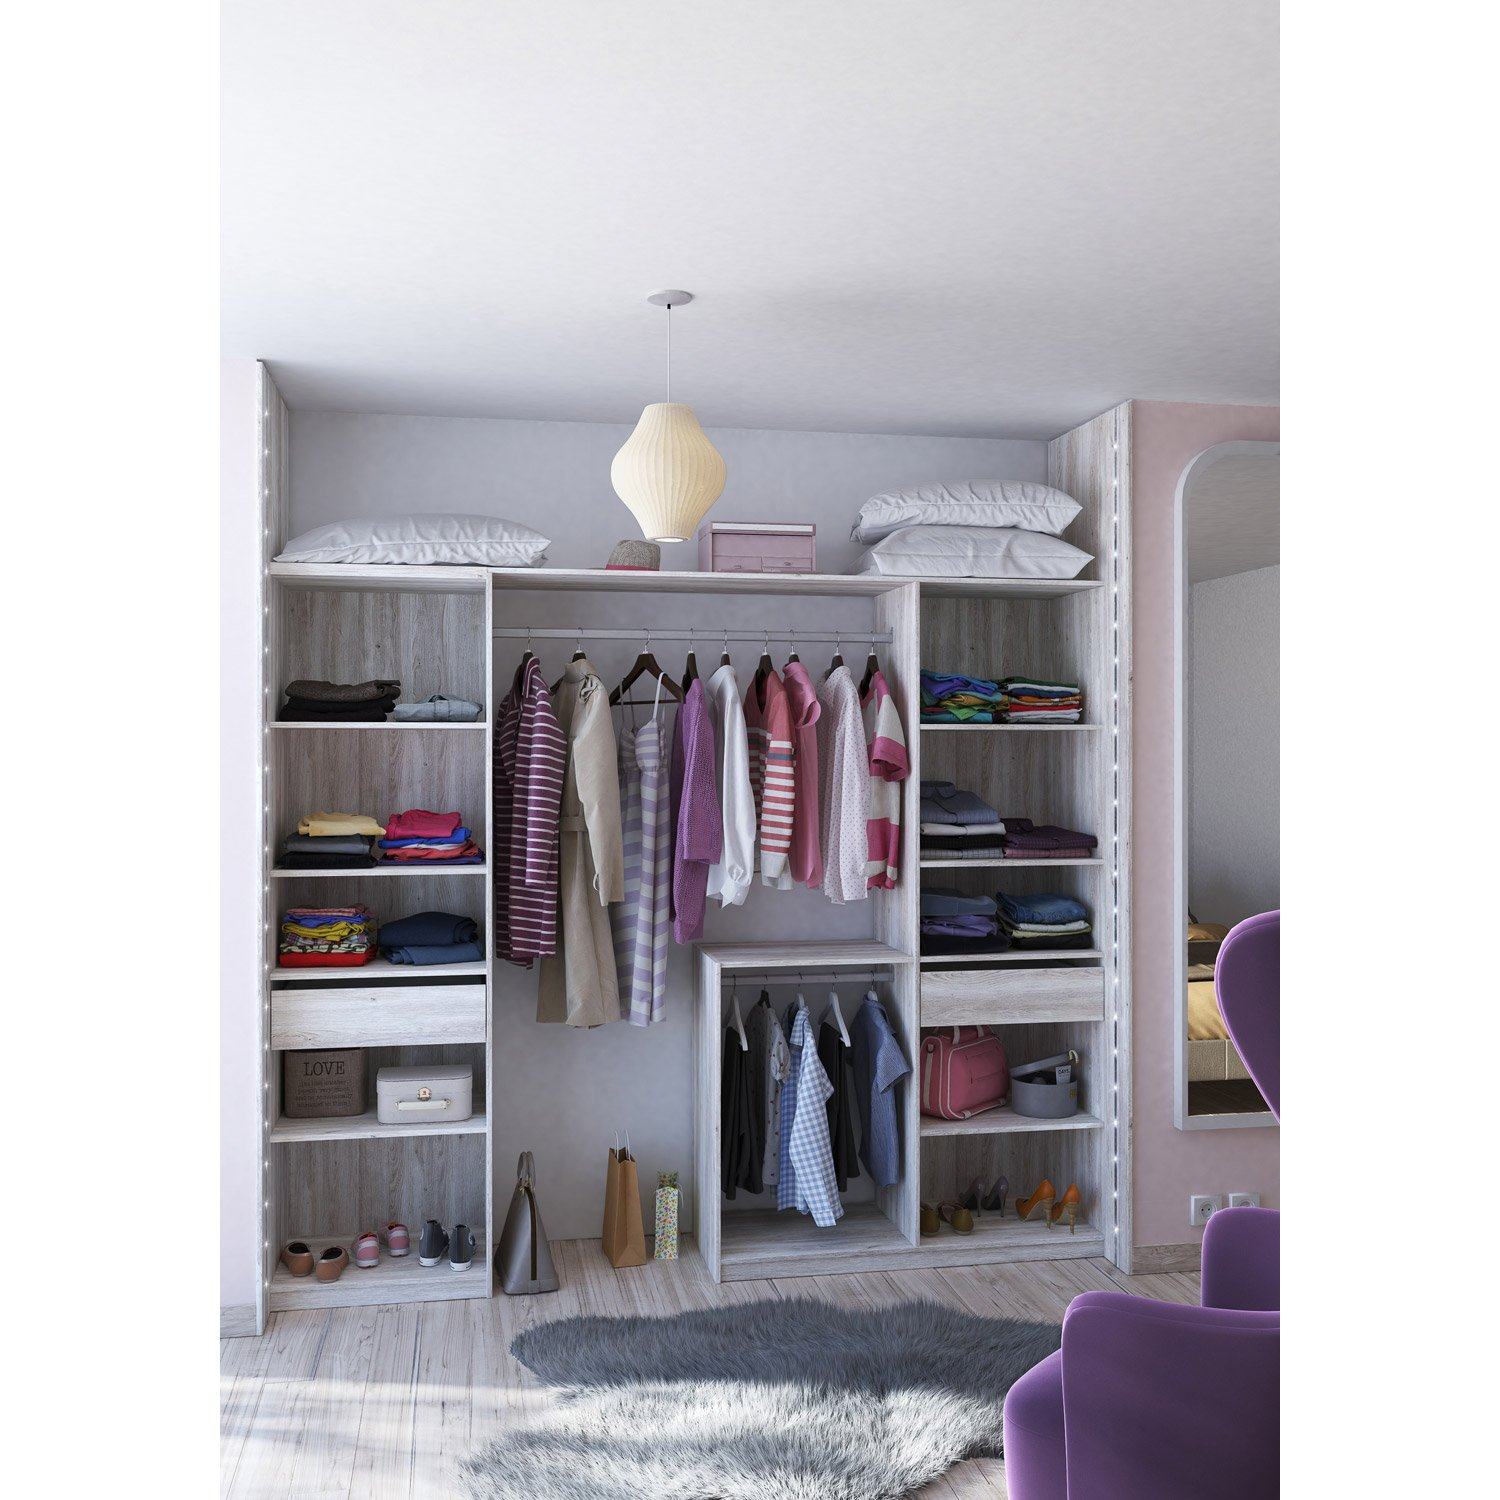 Dressing spaceo home gris dressing leroy merlin - Dressing chaussures pas cher ...